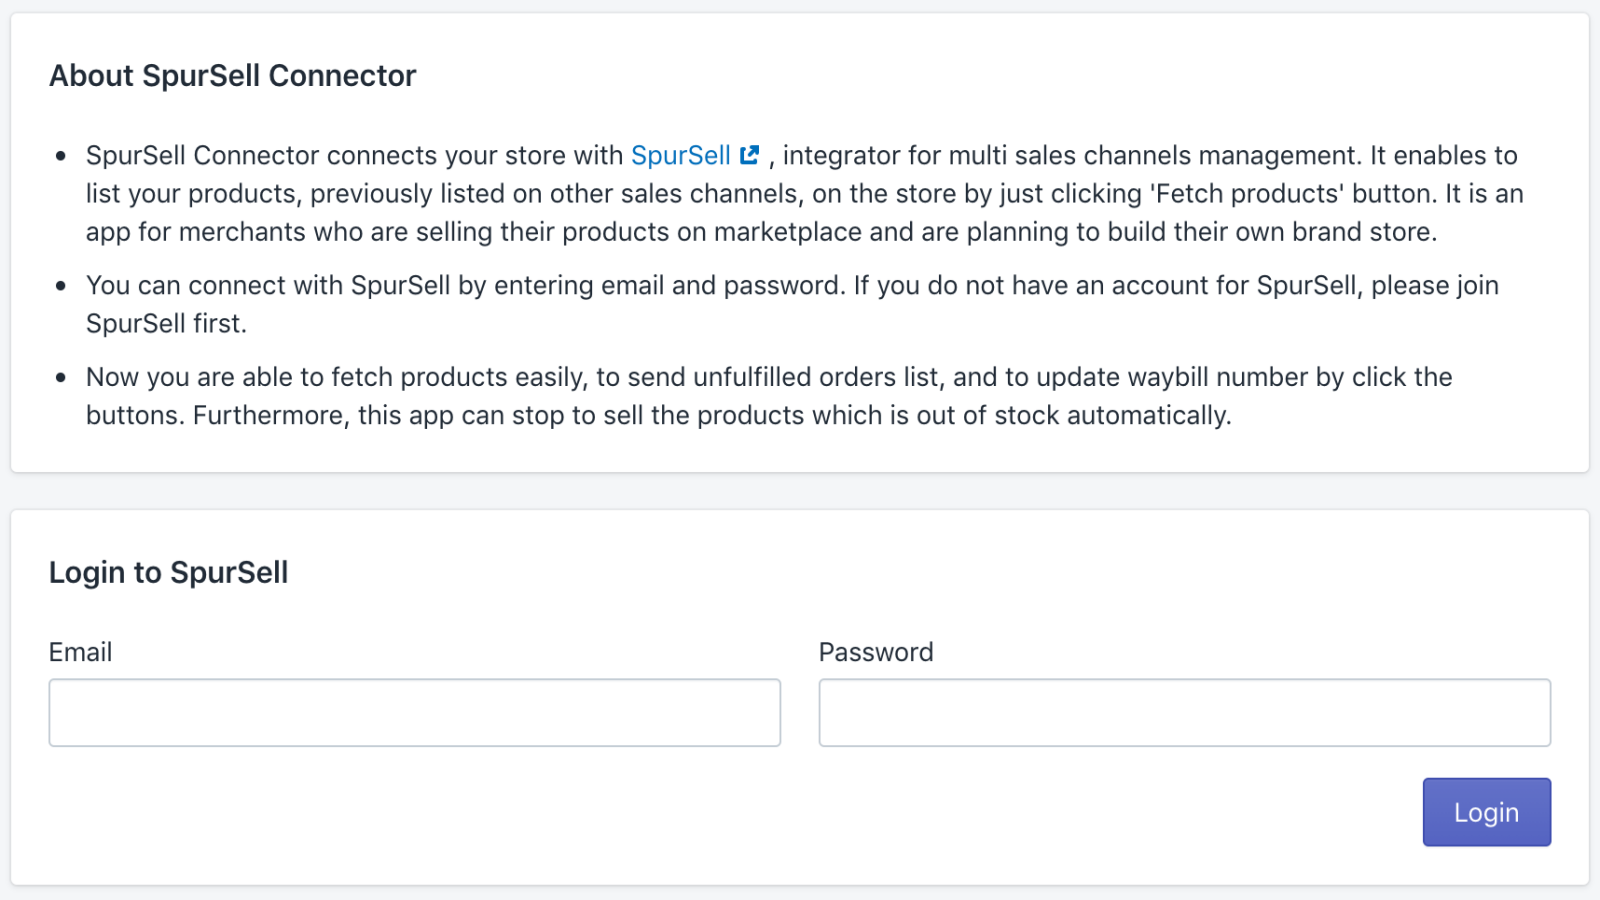 Please log in to SpurSell